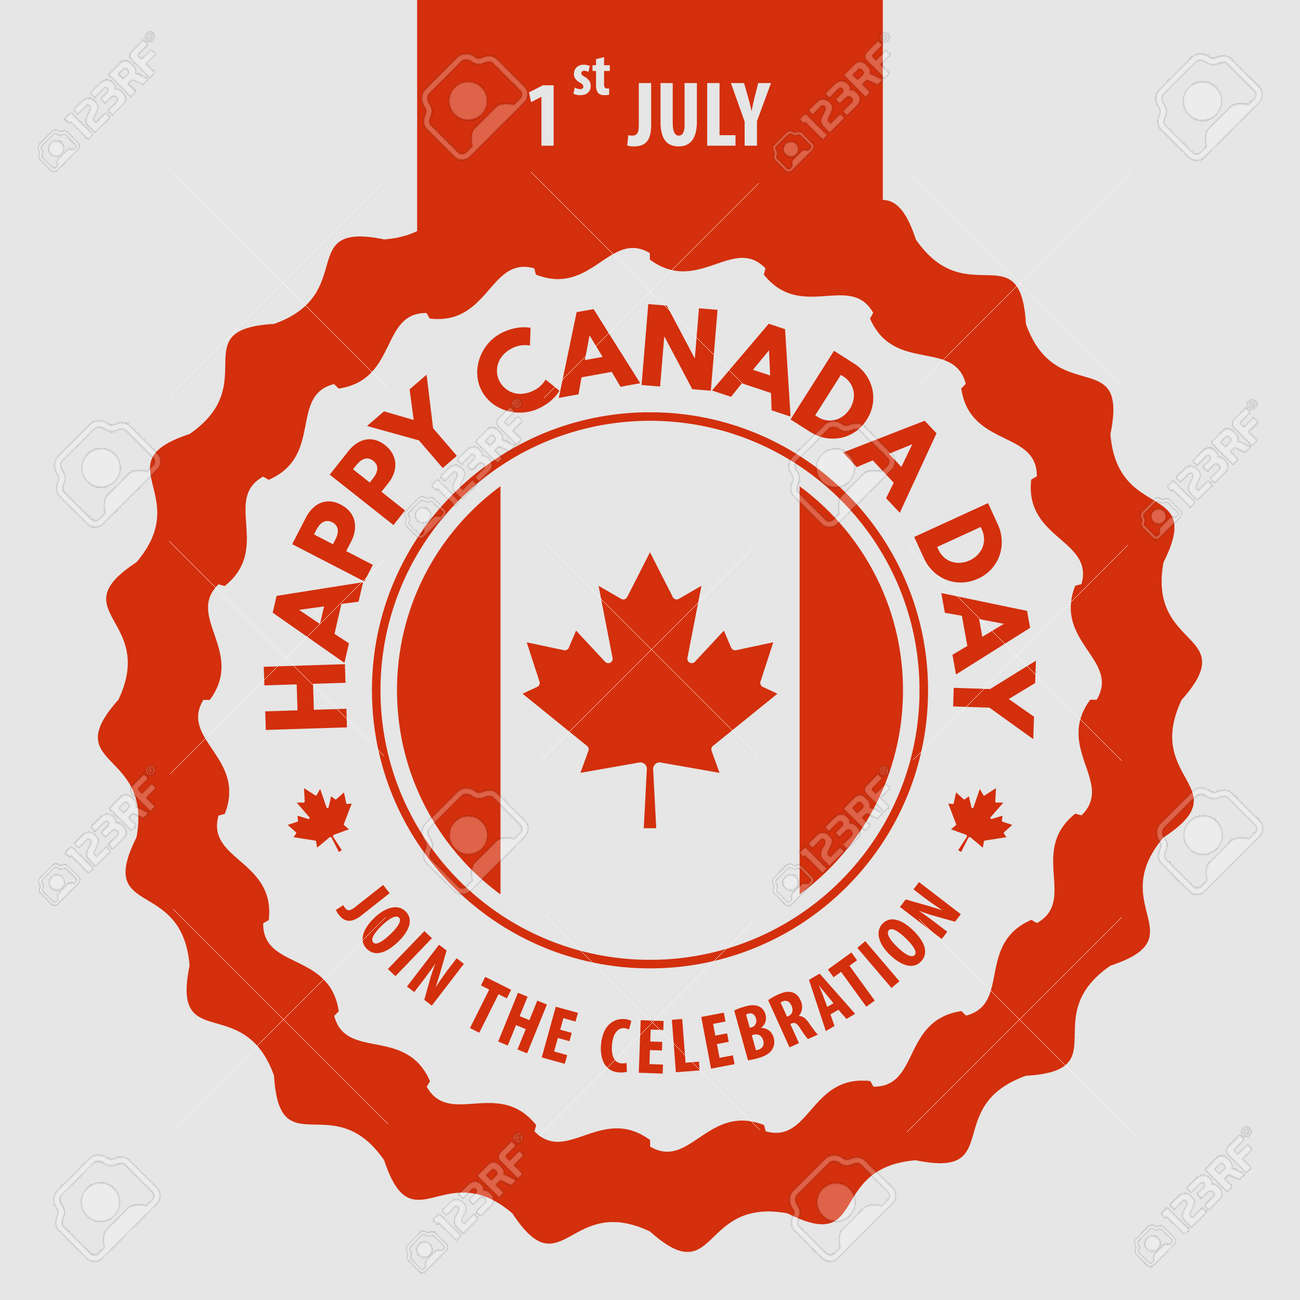 Happy Canada Day greeting card design concept. - 170170792